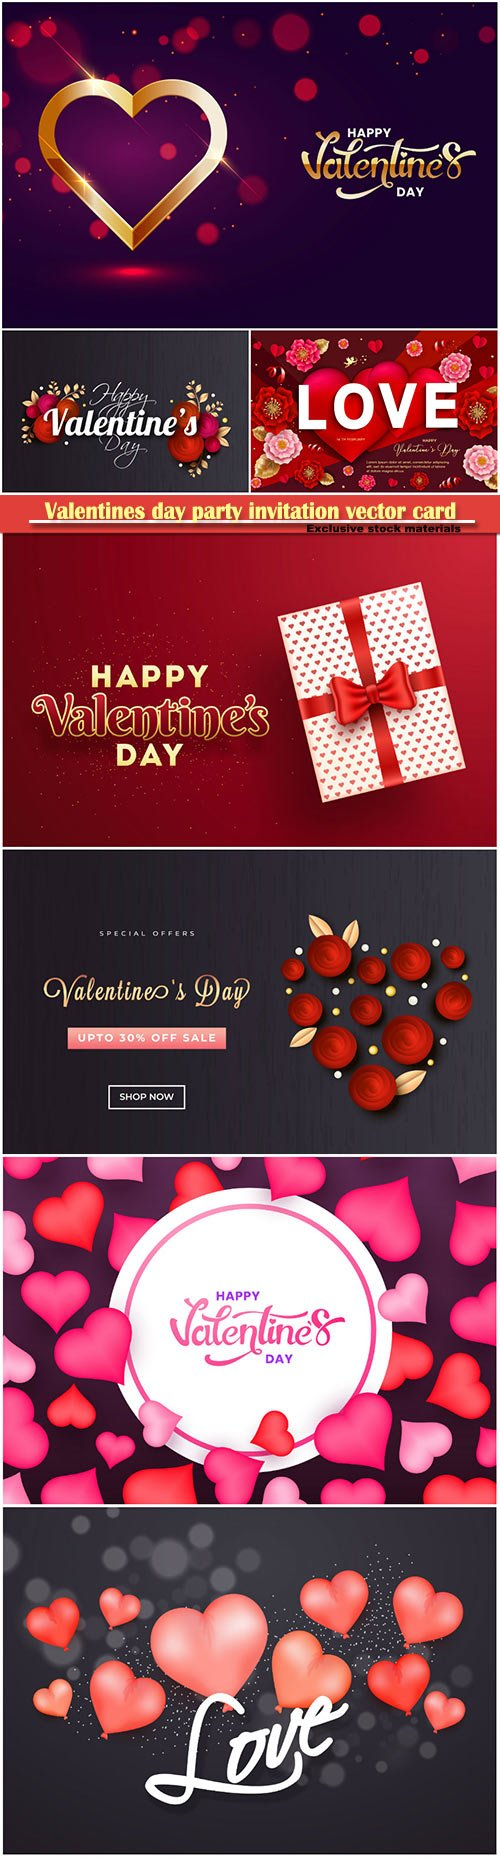 Valentines day party invitation vector card # 40